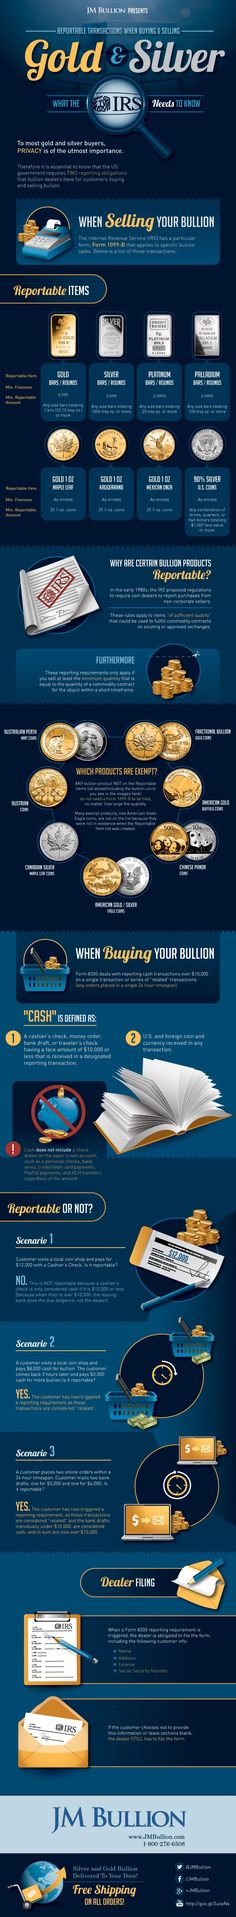 Reportable Bullion Transactions - great information if you collect gold and silver